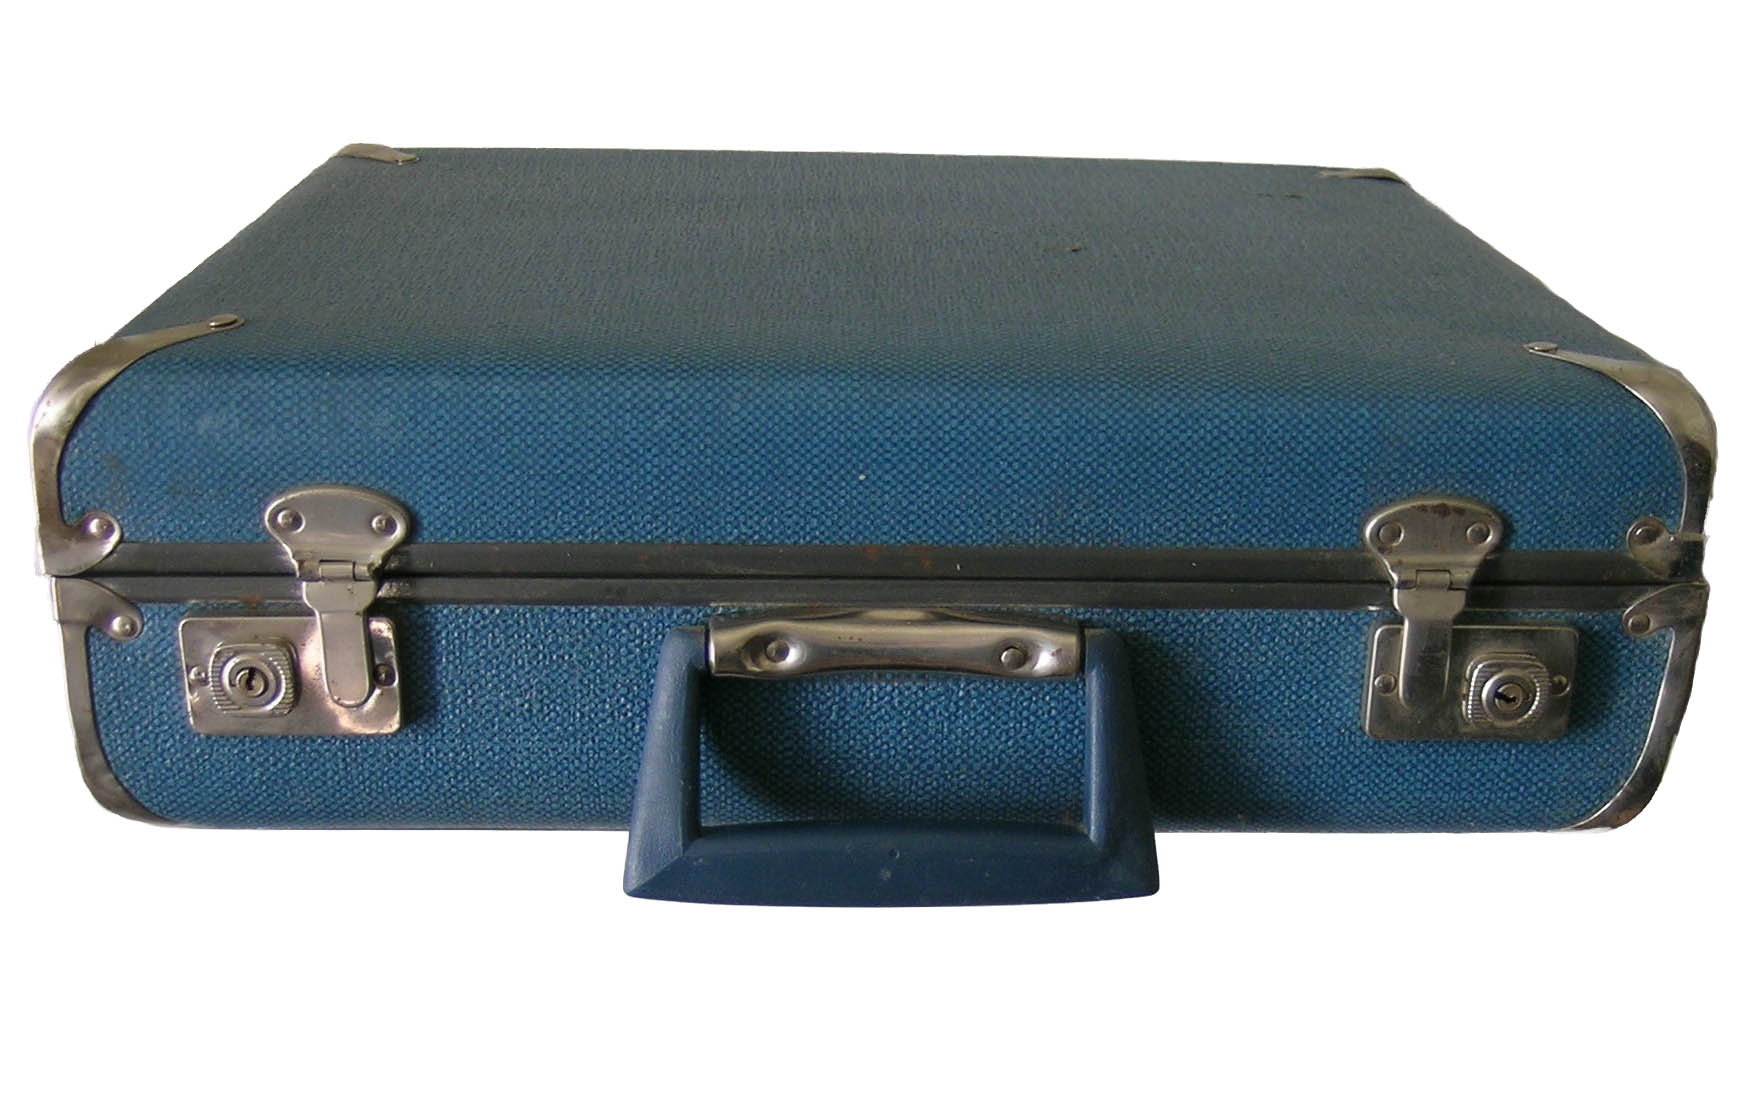 Lightweight Vintage Suitcase in Denim Blue - Perfect for Carrying ...